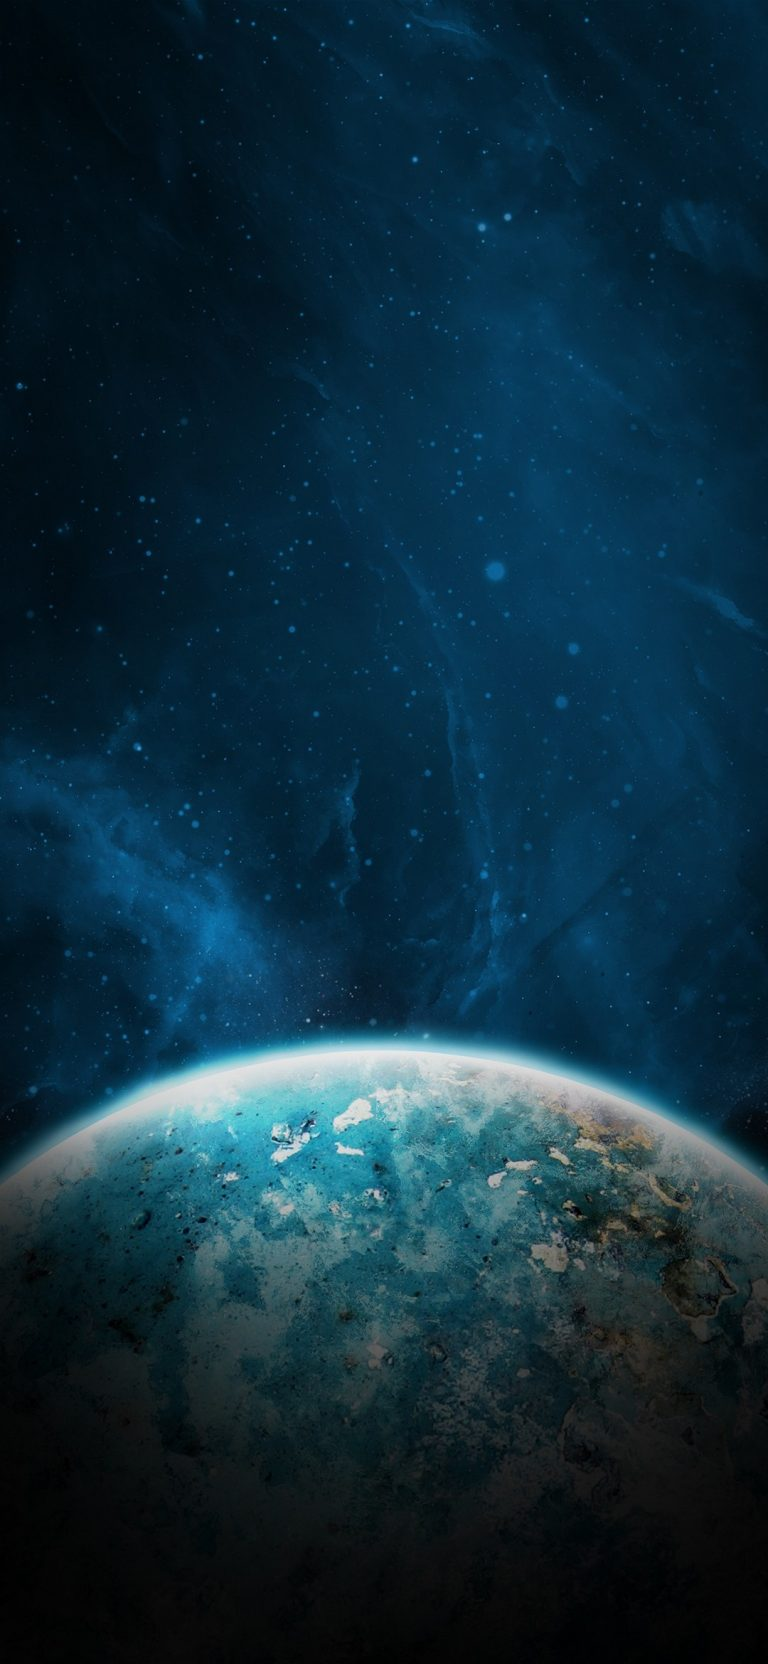 Space Phone Wallpaper 100 1080x2340 768x1664